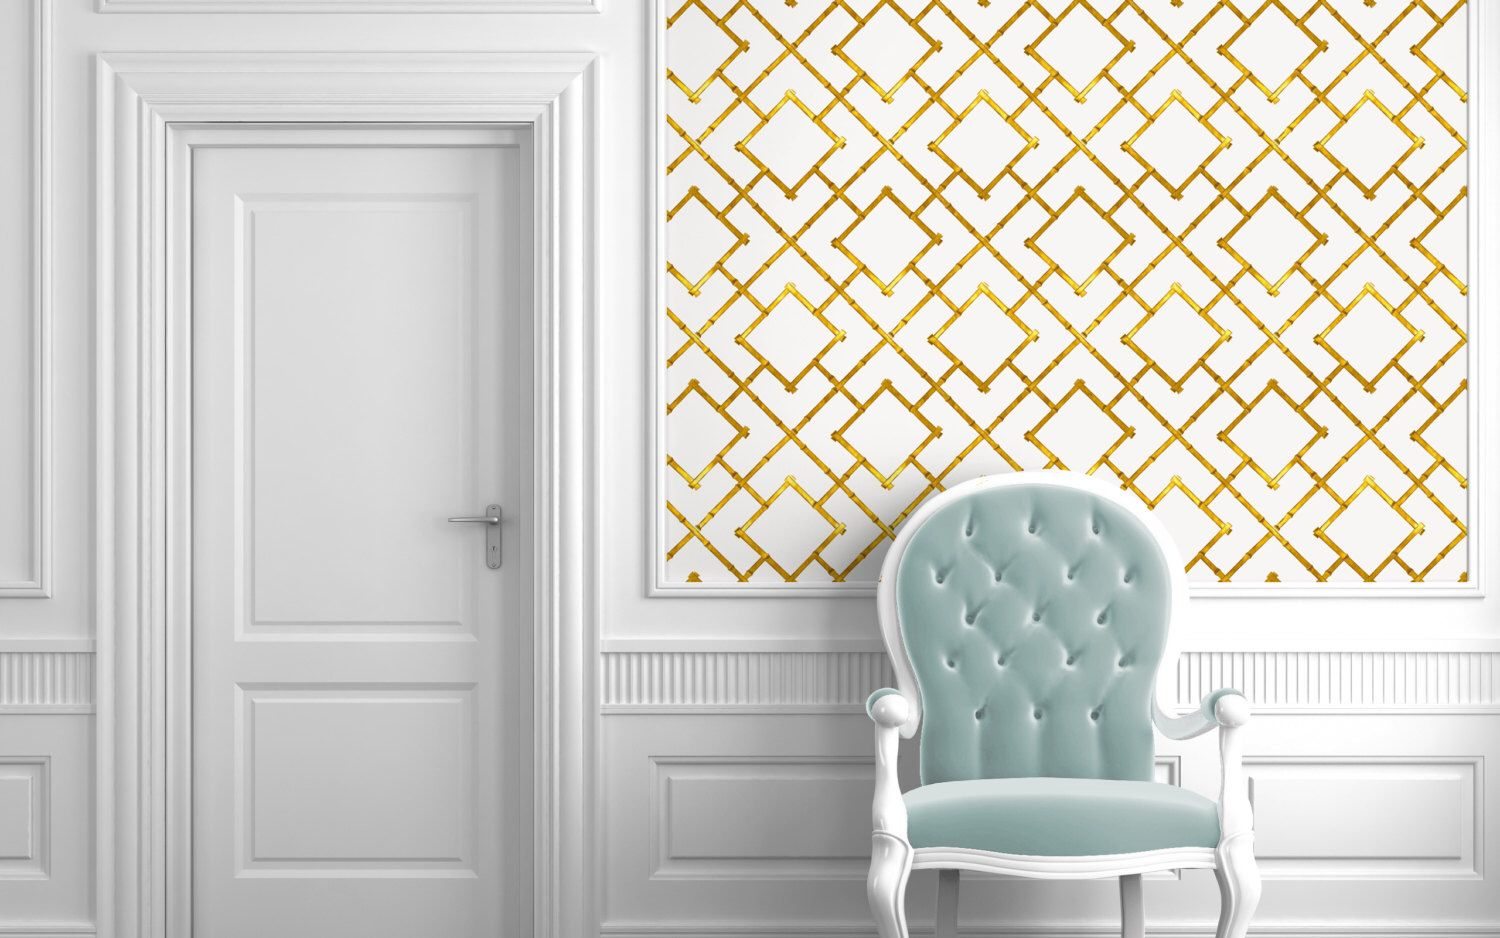 Gold Bamboo Trellis Repositionable Peel N Stick Wallpaper Custom Sizes And Colors By Wallpaperie